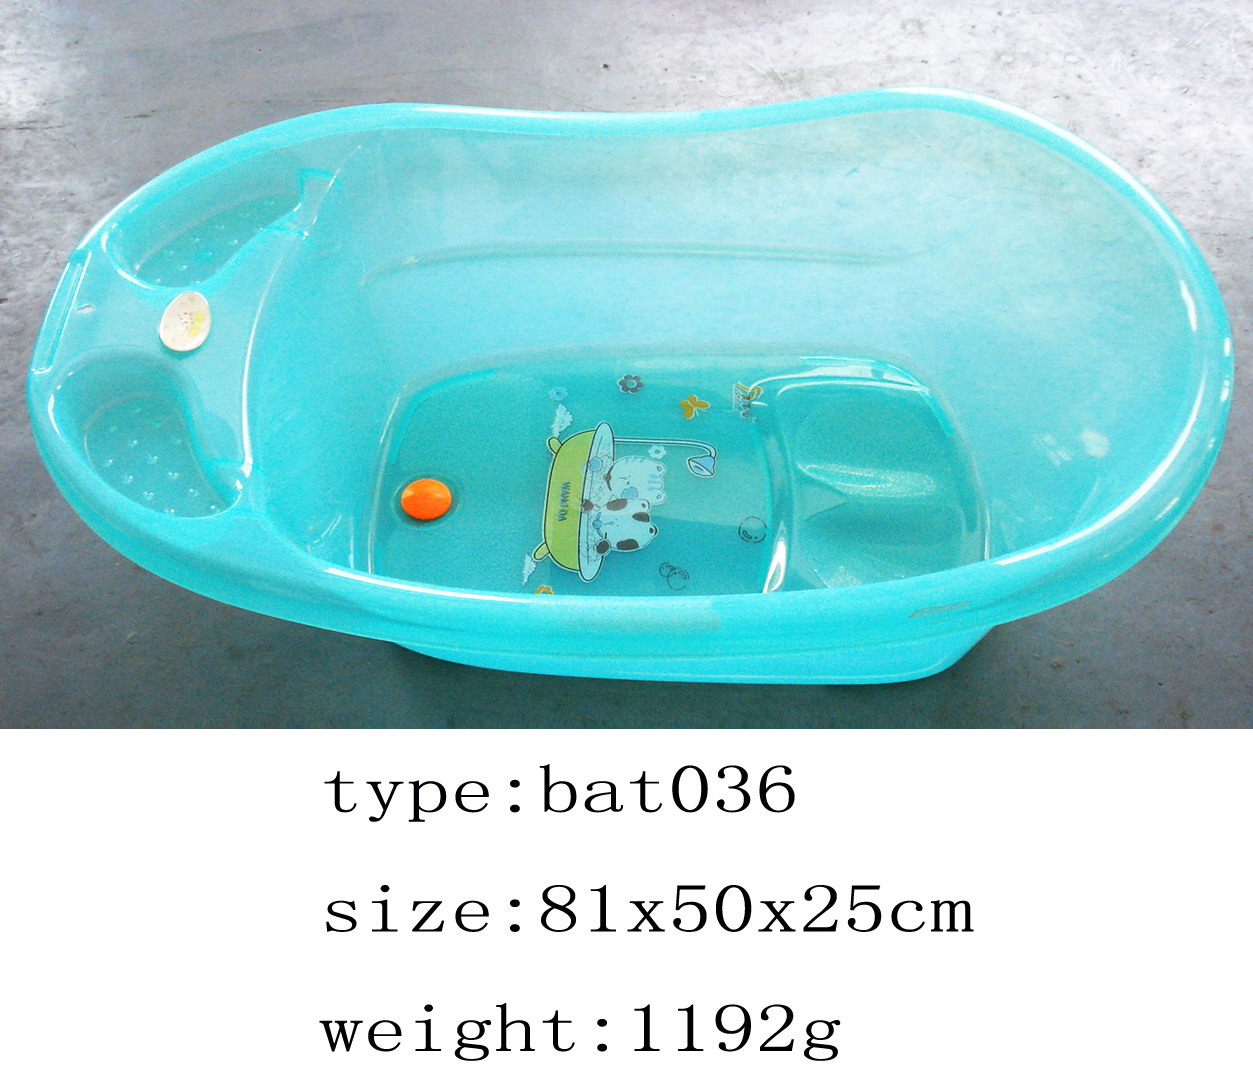 bat036-bathtube-mould/Products/usd mould,stool mould,chair mould ...